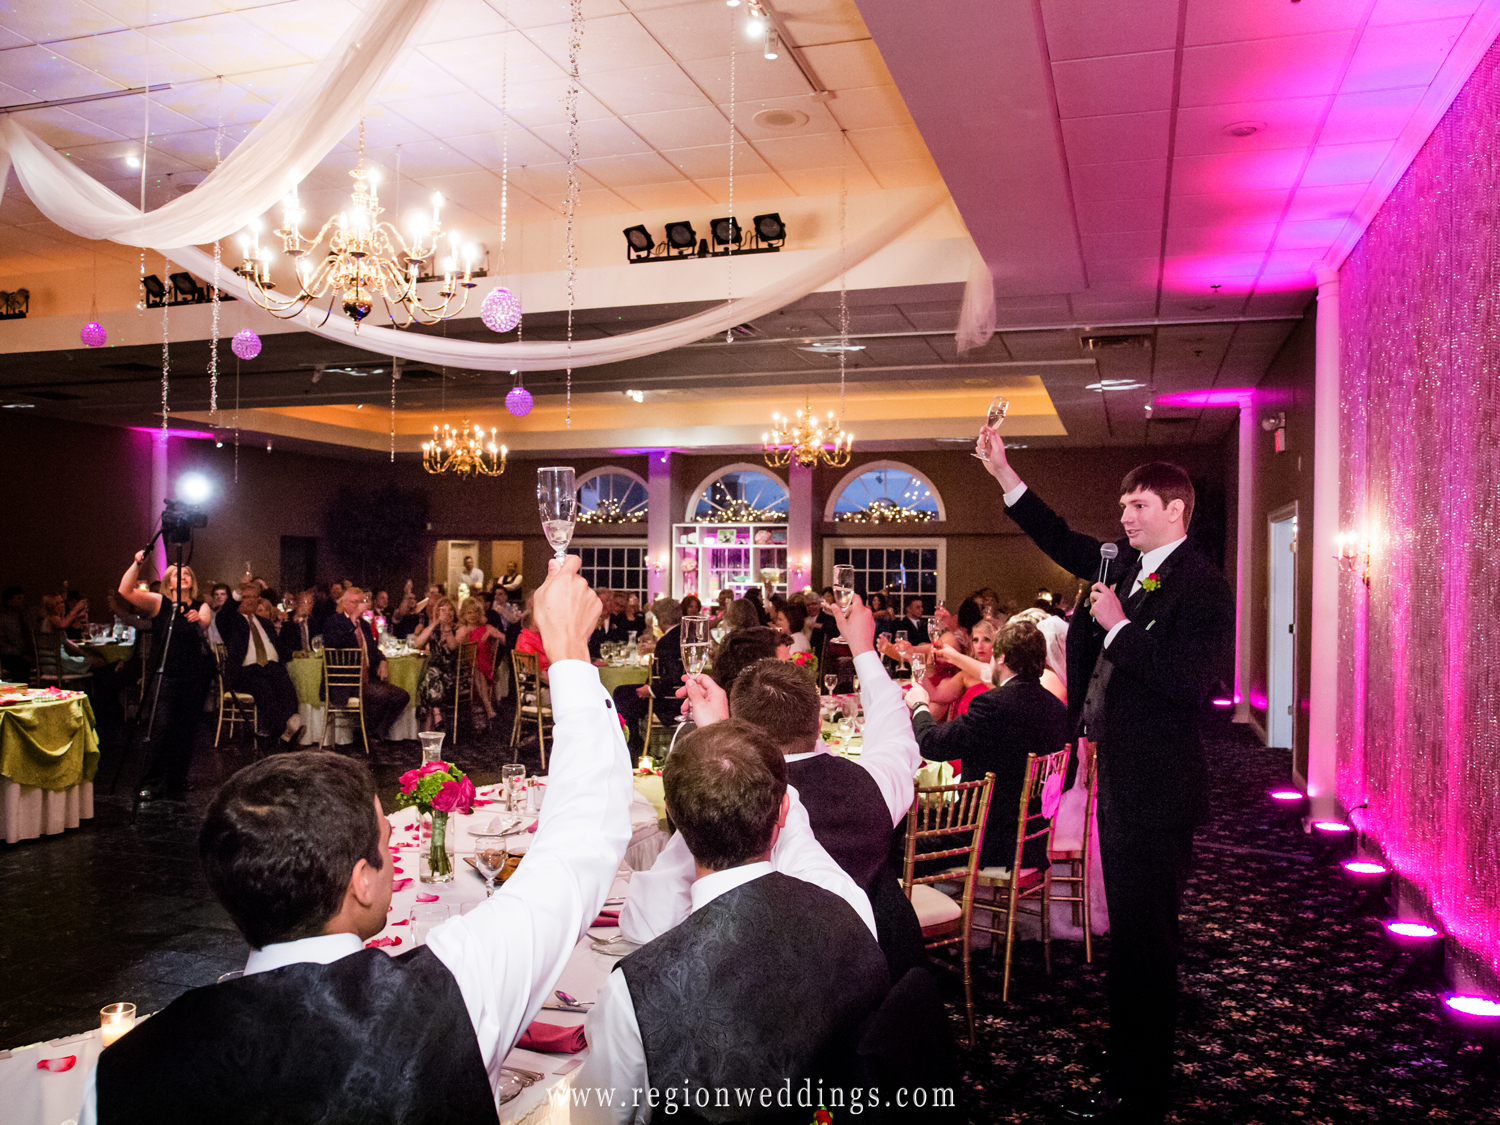 The best man raises his glass in tribute to the bride and groom.